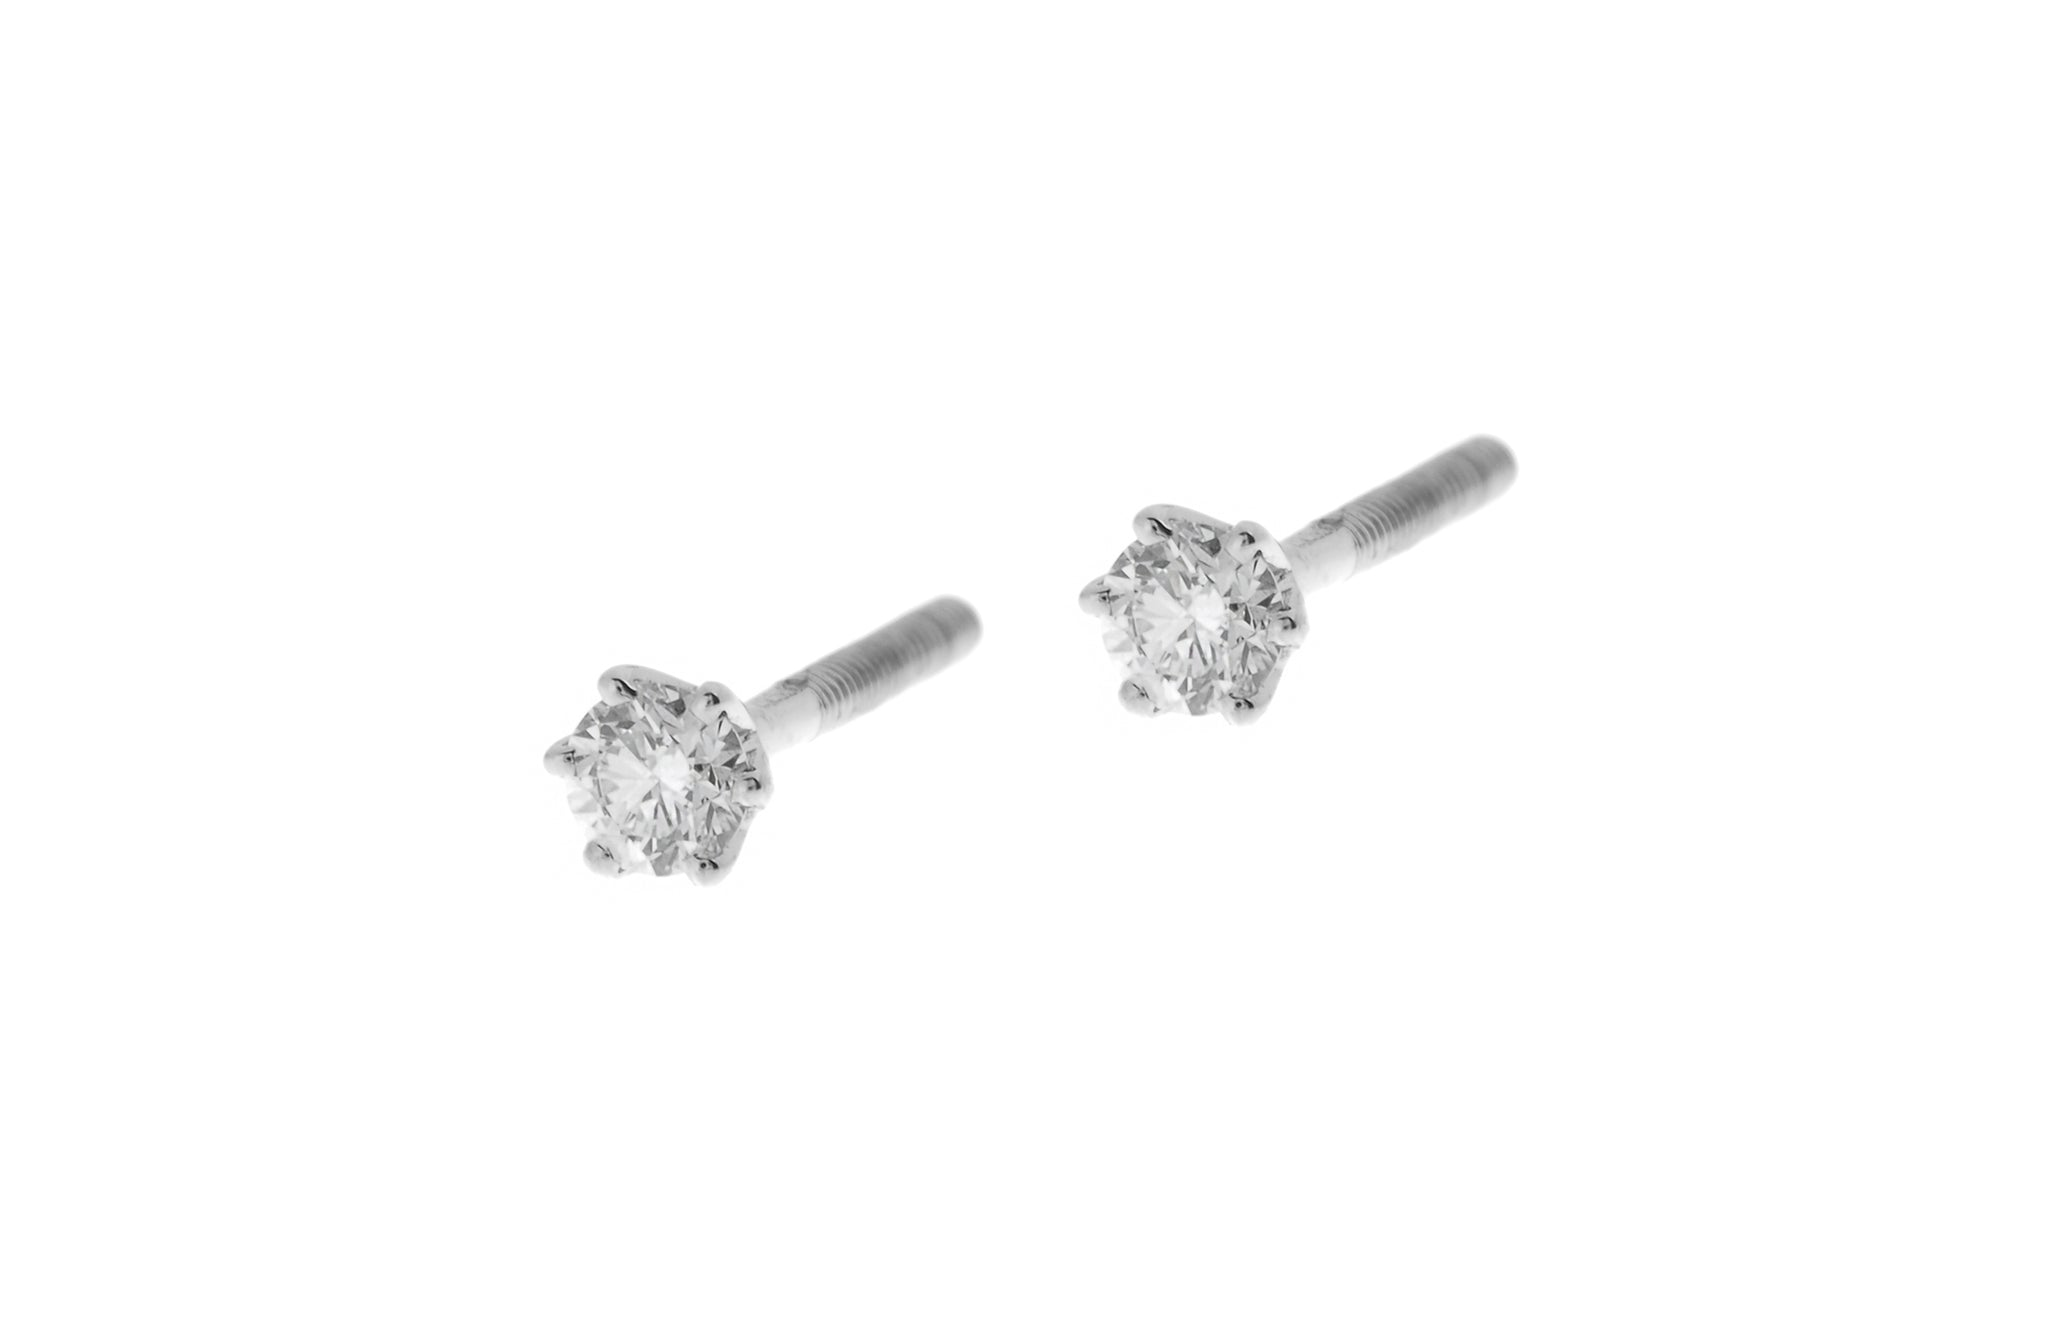 18ct White Gold 0.14ct Diamond Stud Earrings MCS2774